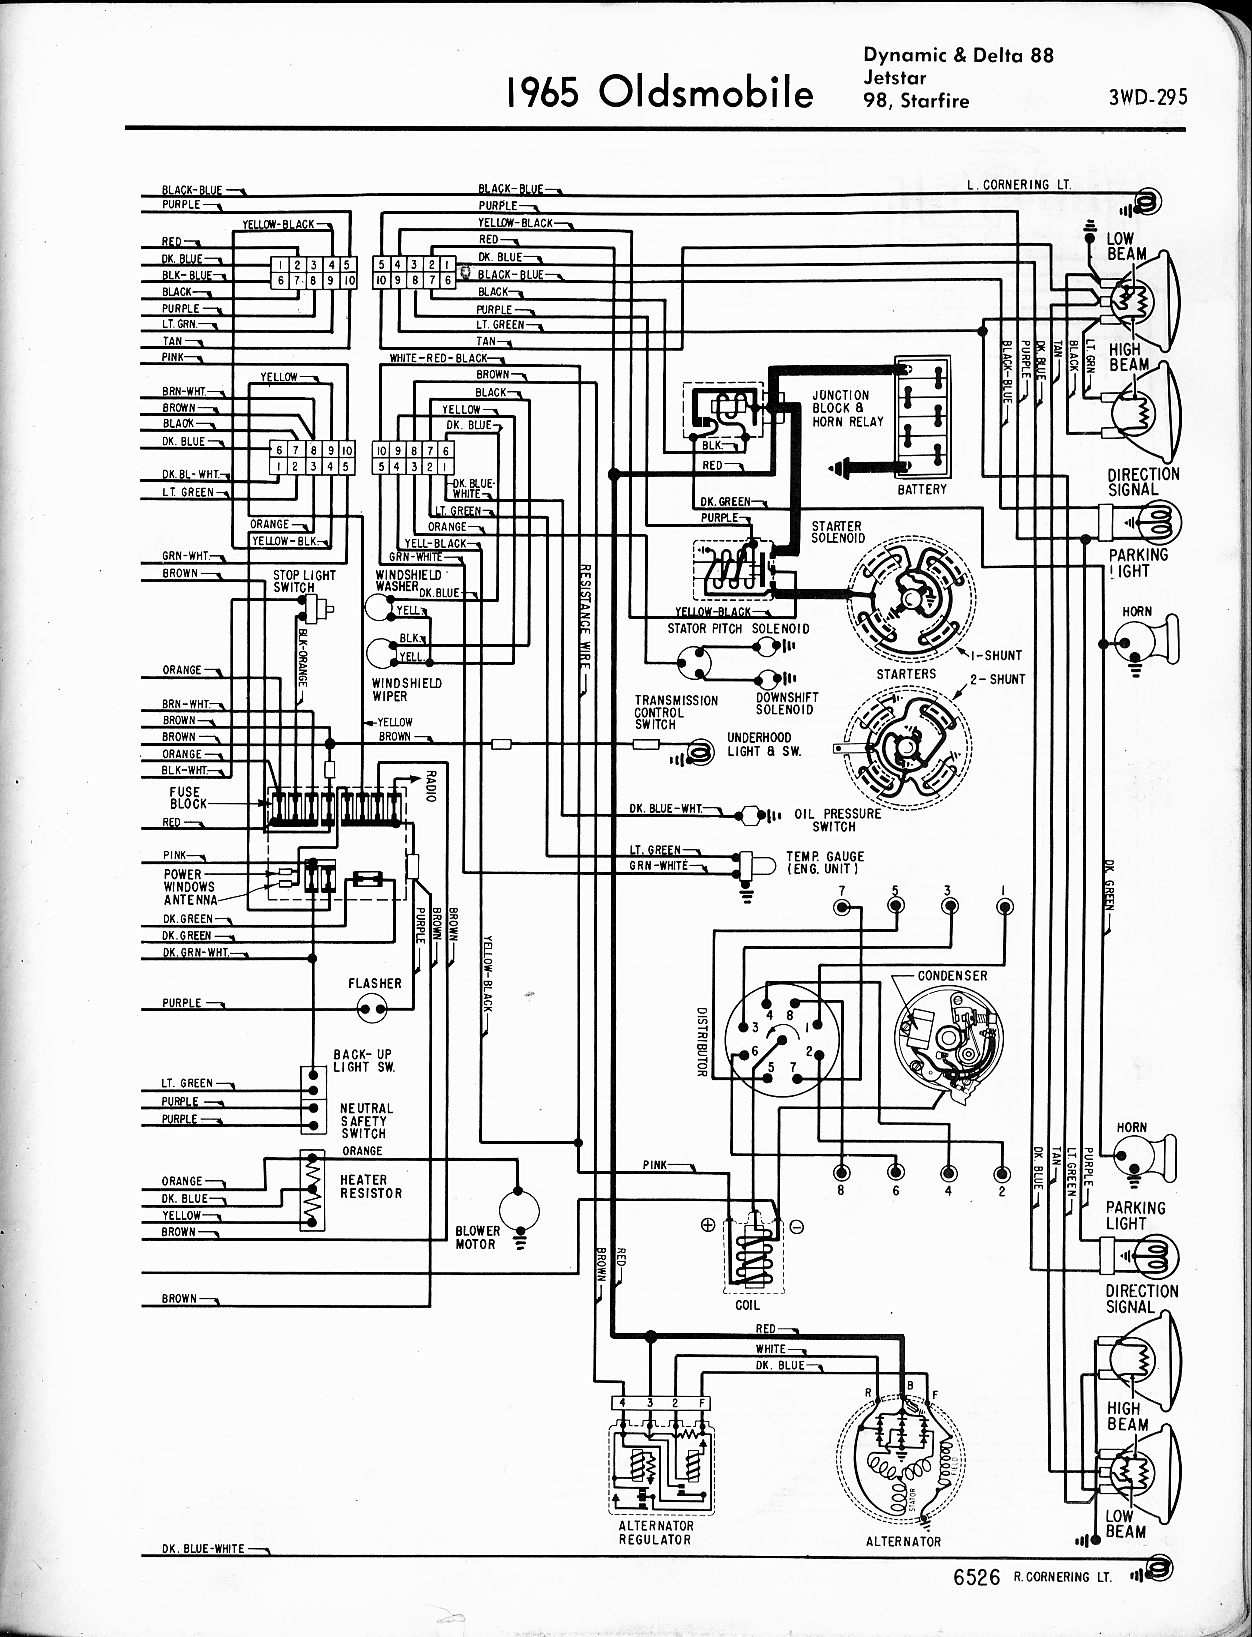 [SCHEMATICS_4US]  7417 1998 Oldsmobile 88 Fuse Box Diagram Wiring Schematic | Wiring Library | 1999 Oldsmobile Cutl Fuse Box Diagram |  | Wiring Library